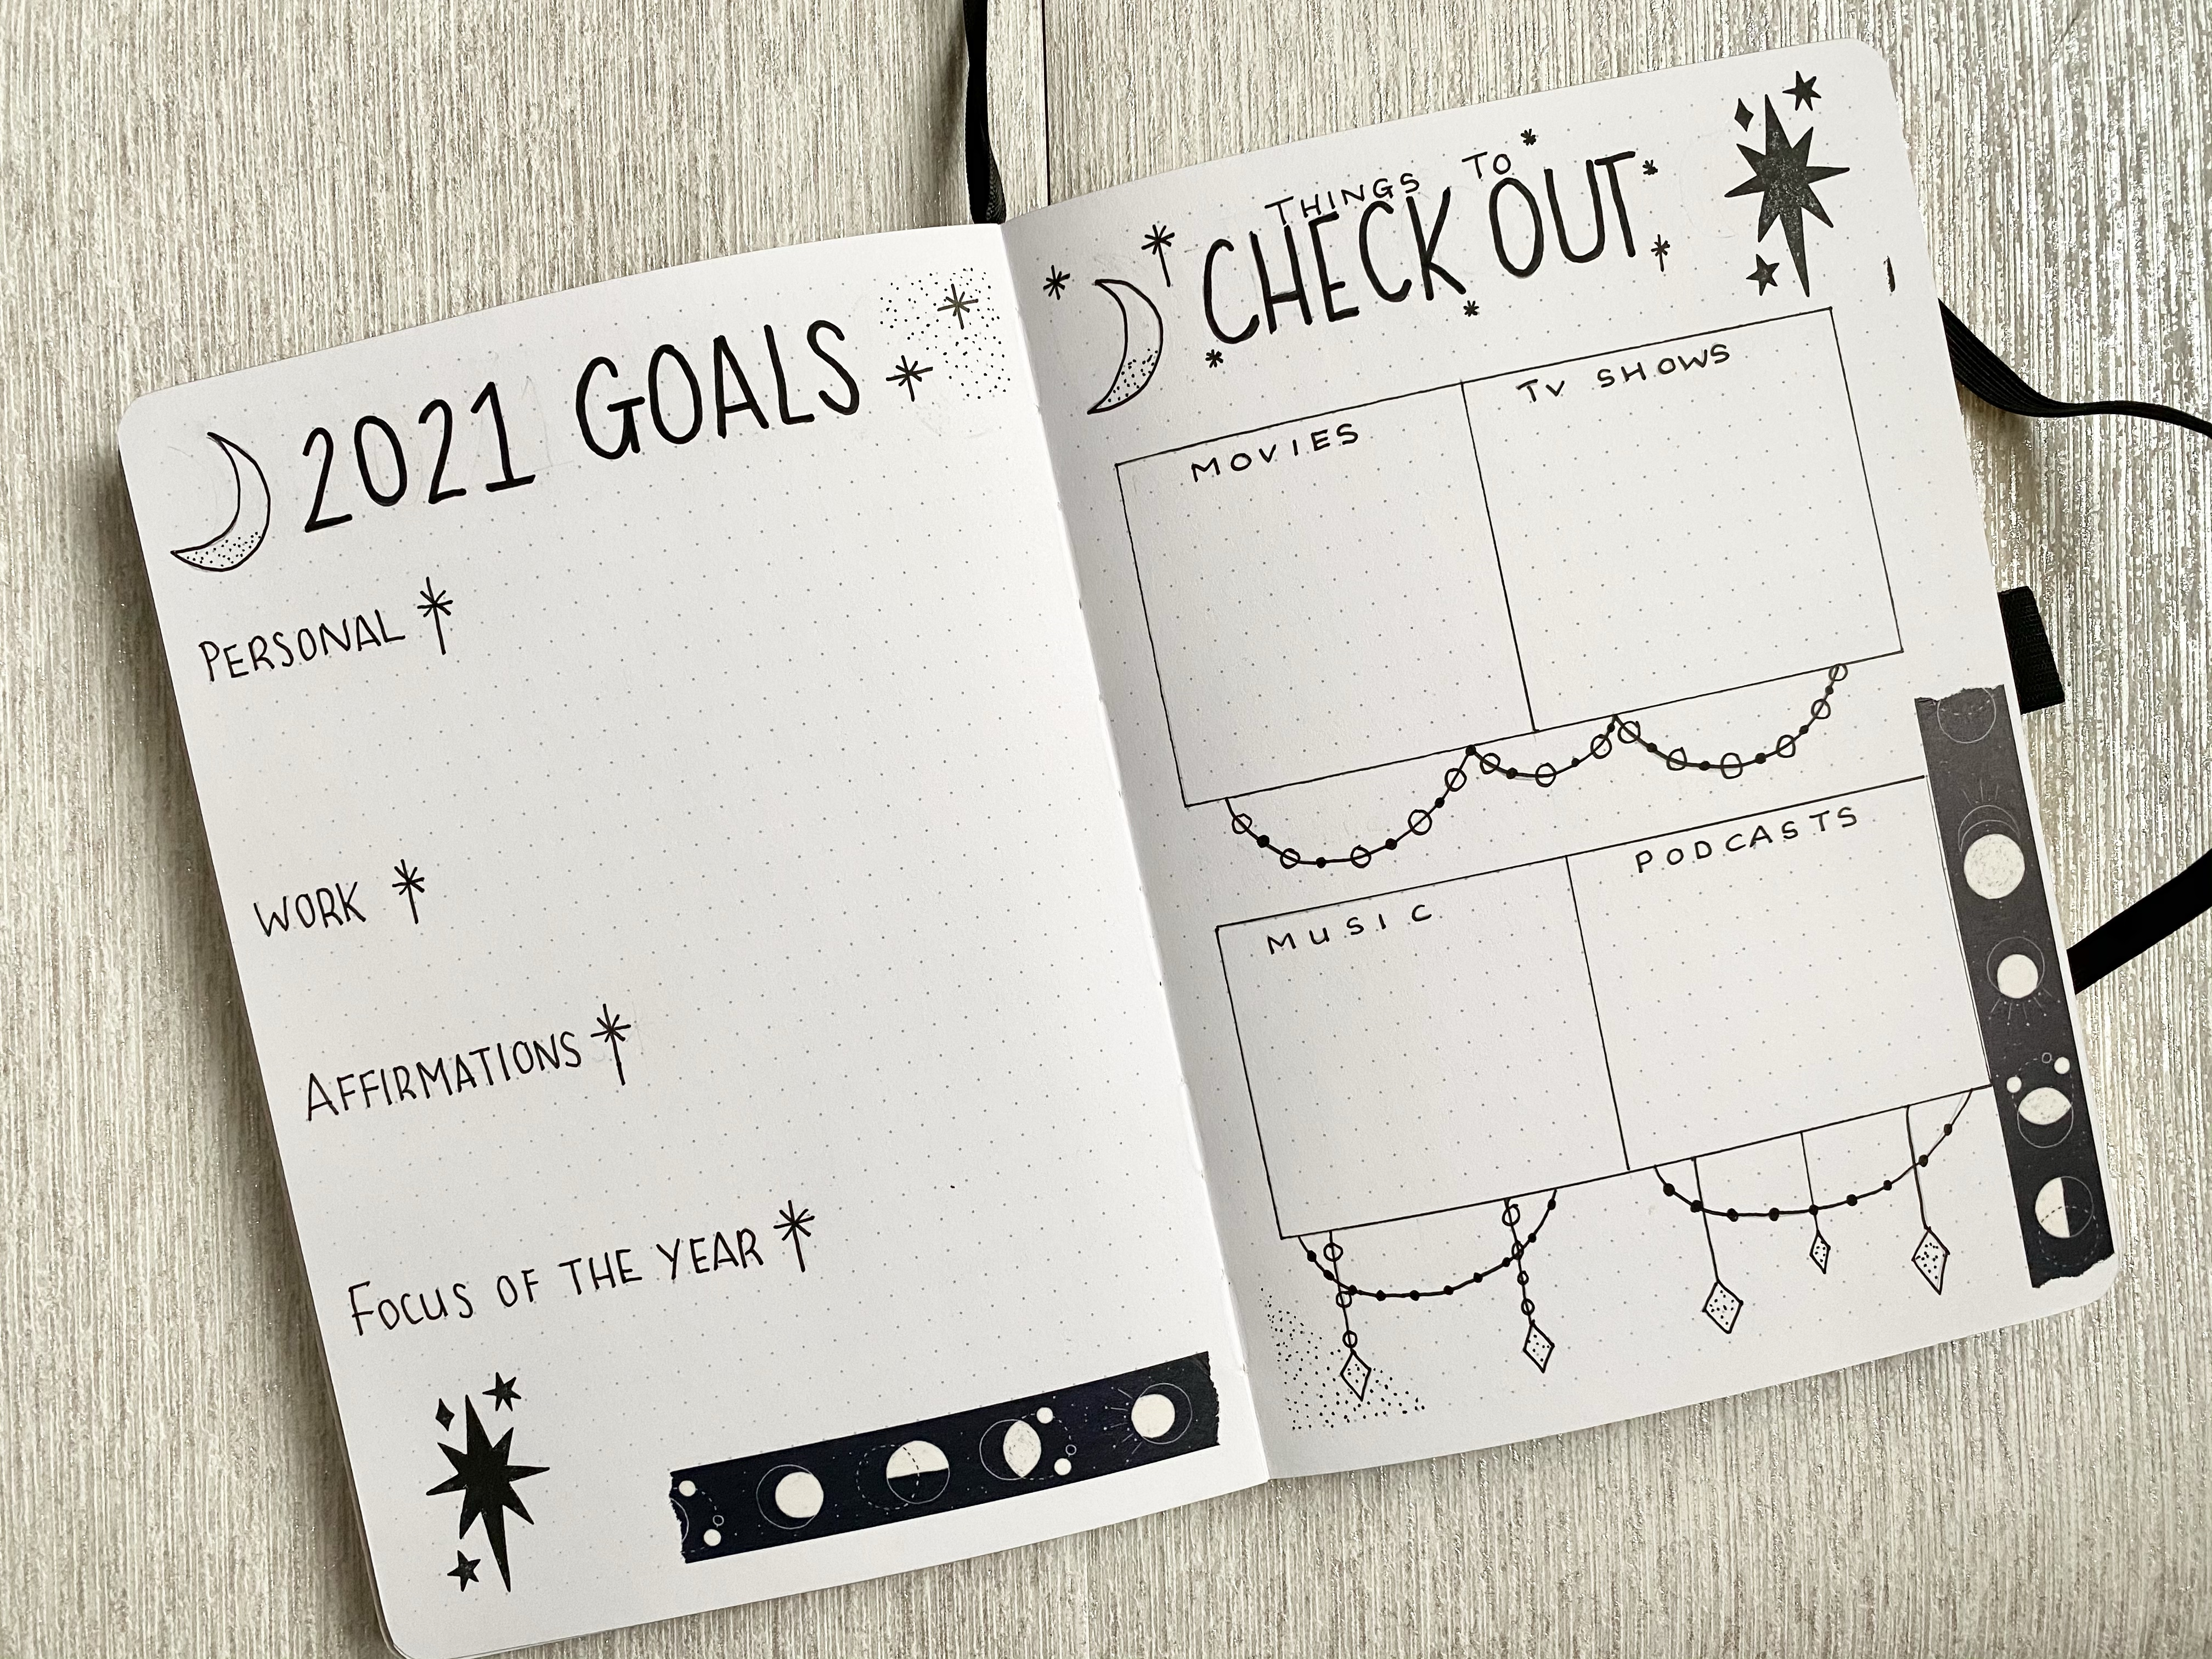 A bullet journal 2021 spread using black lettering, moons, stars and moon washi tape. On the right page is a 2021 goals page and the left page is a things to check out page to write down recommendations.